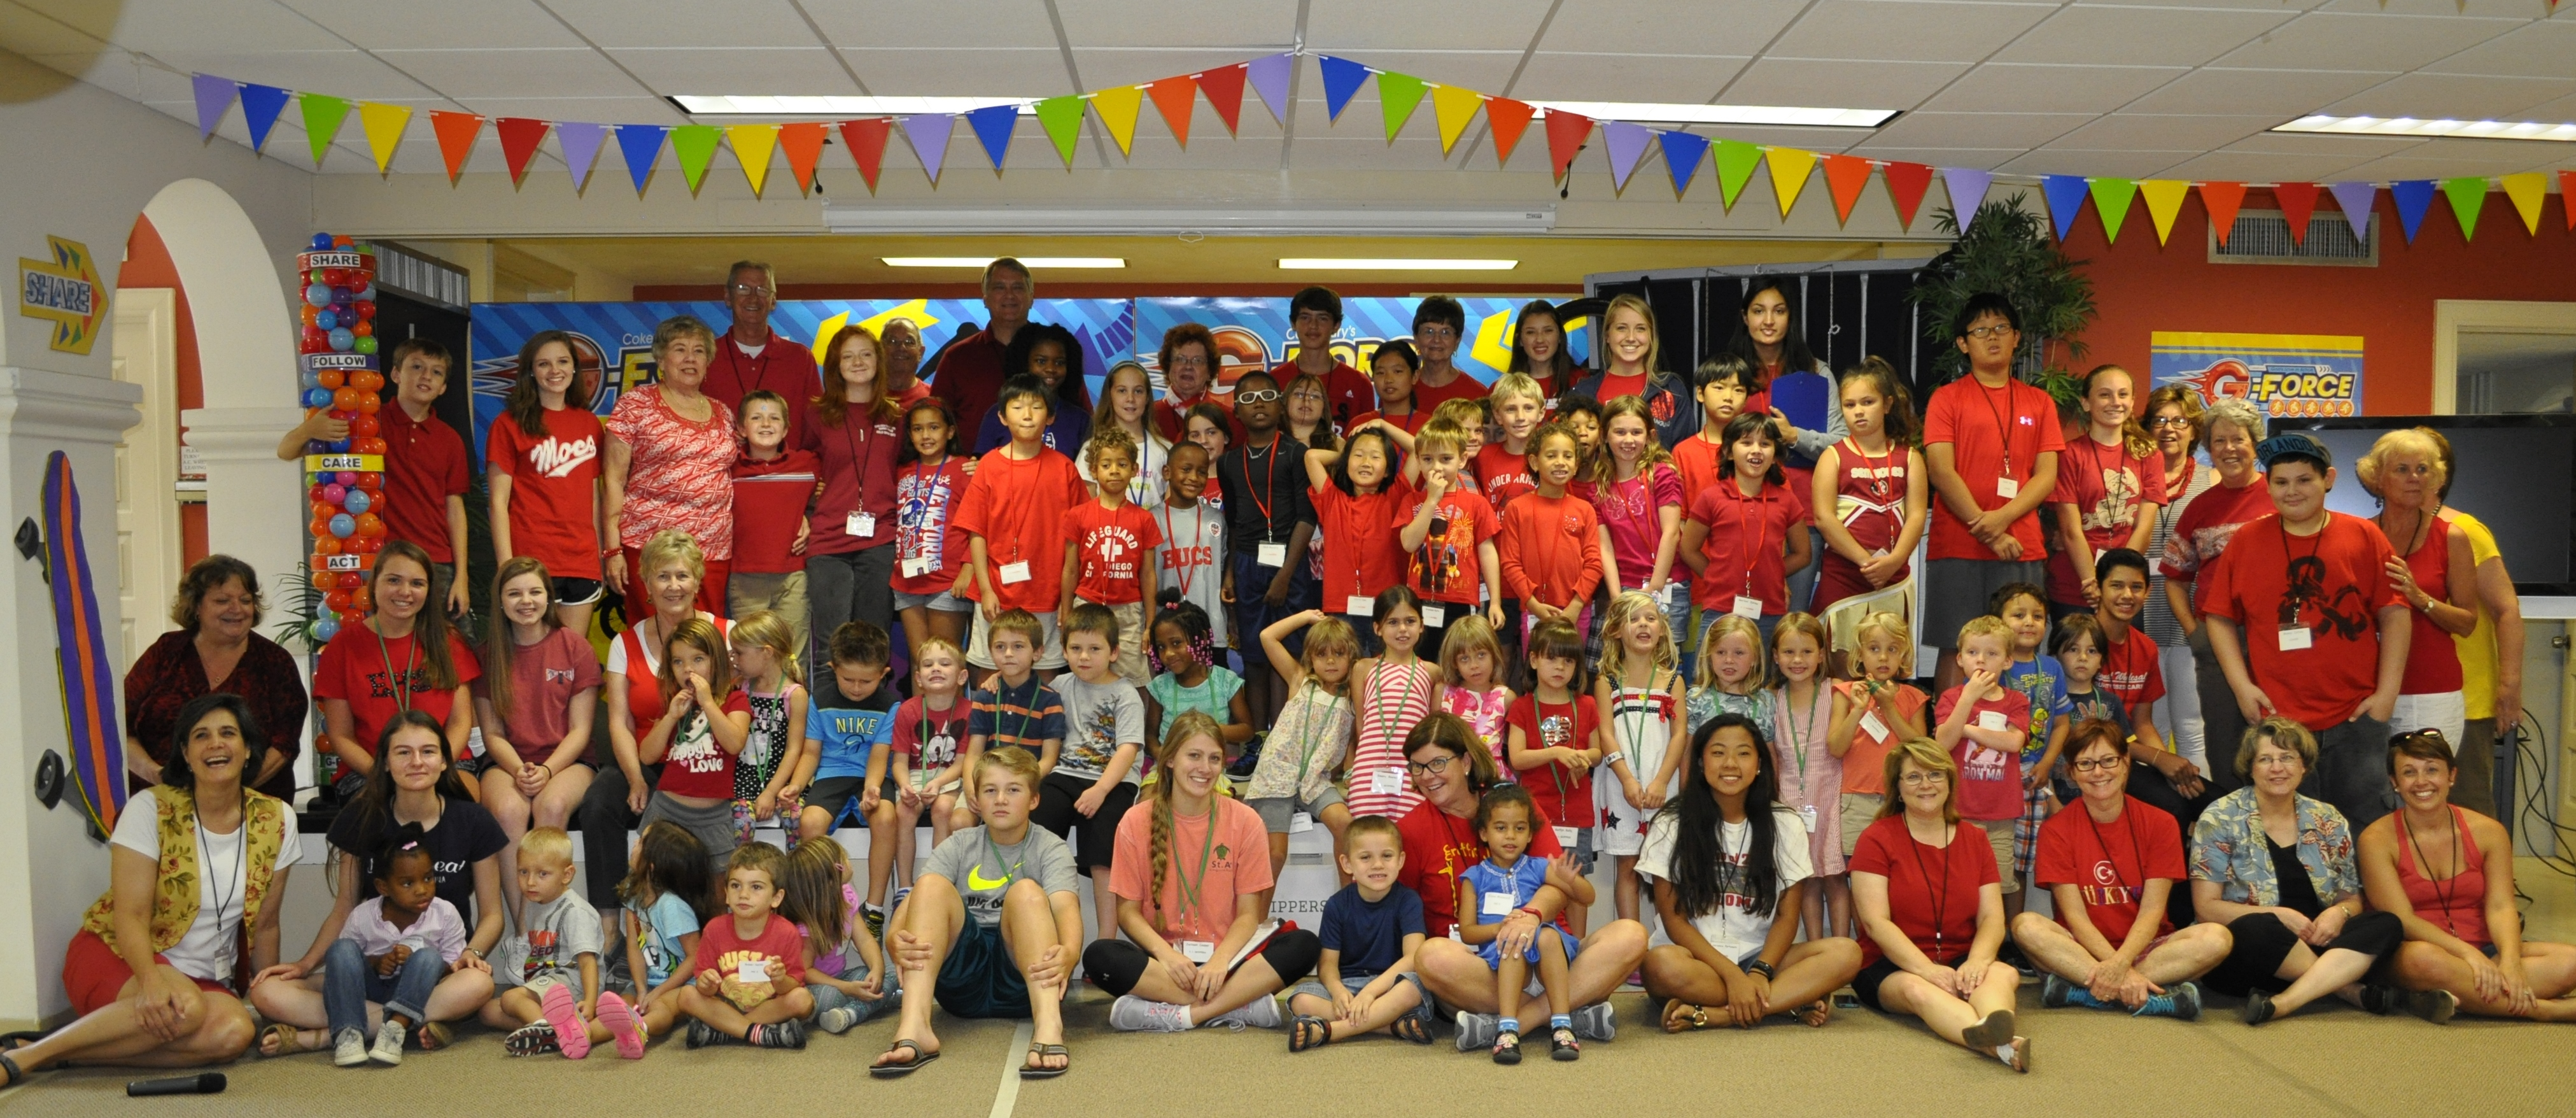 vbs group photo 2015